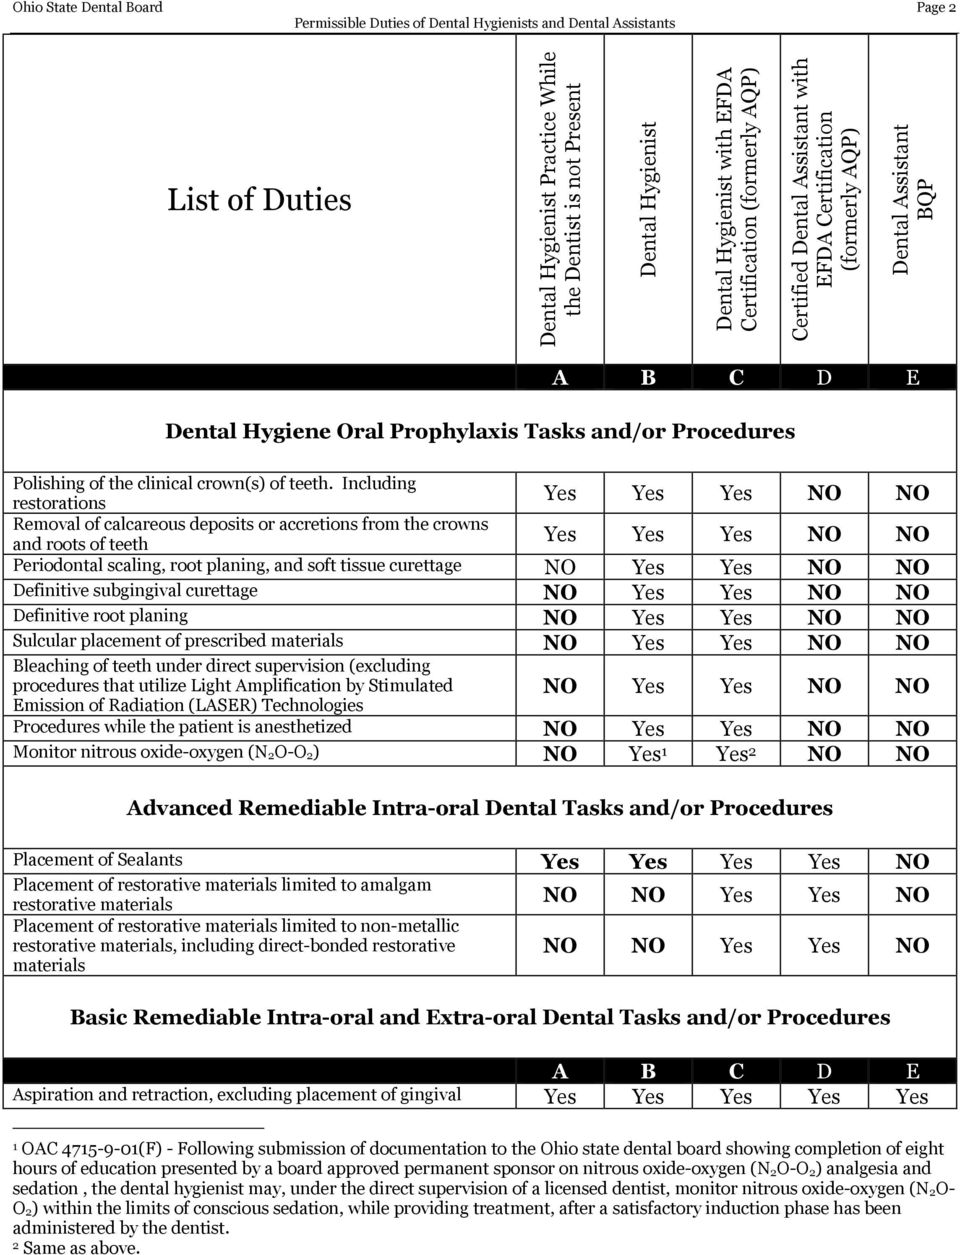 Ohio State Dental Board Permissible Duties Of Dental Hygienists And